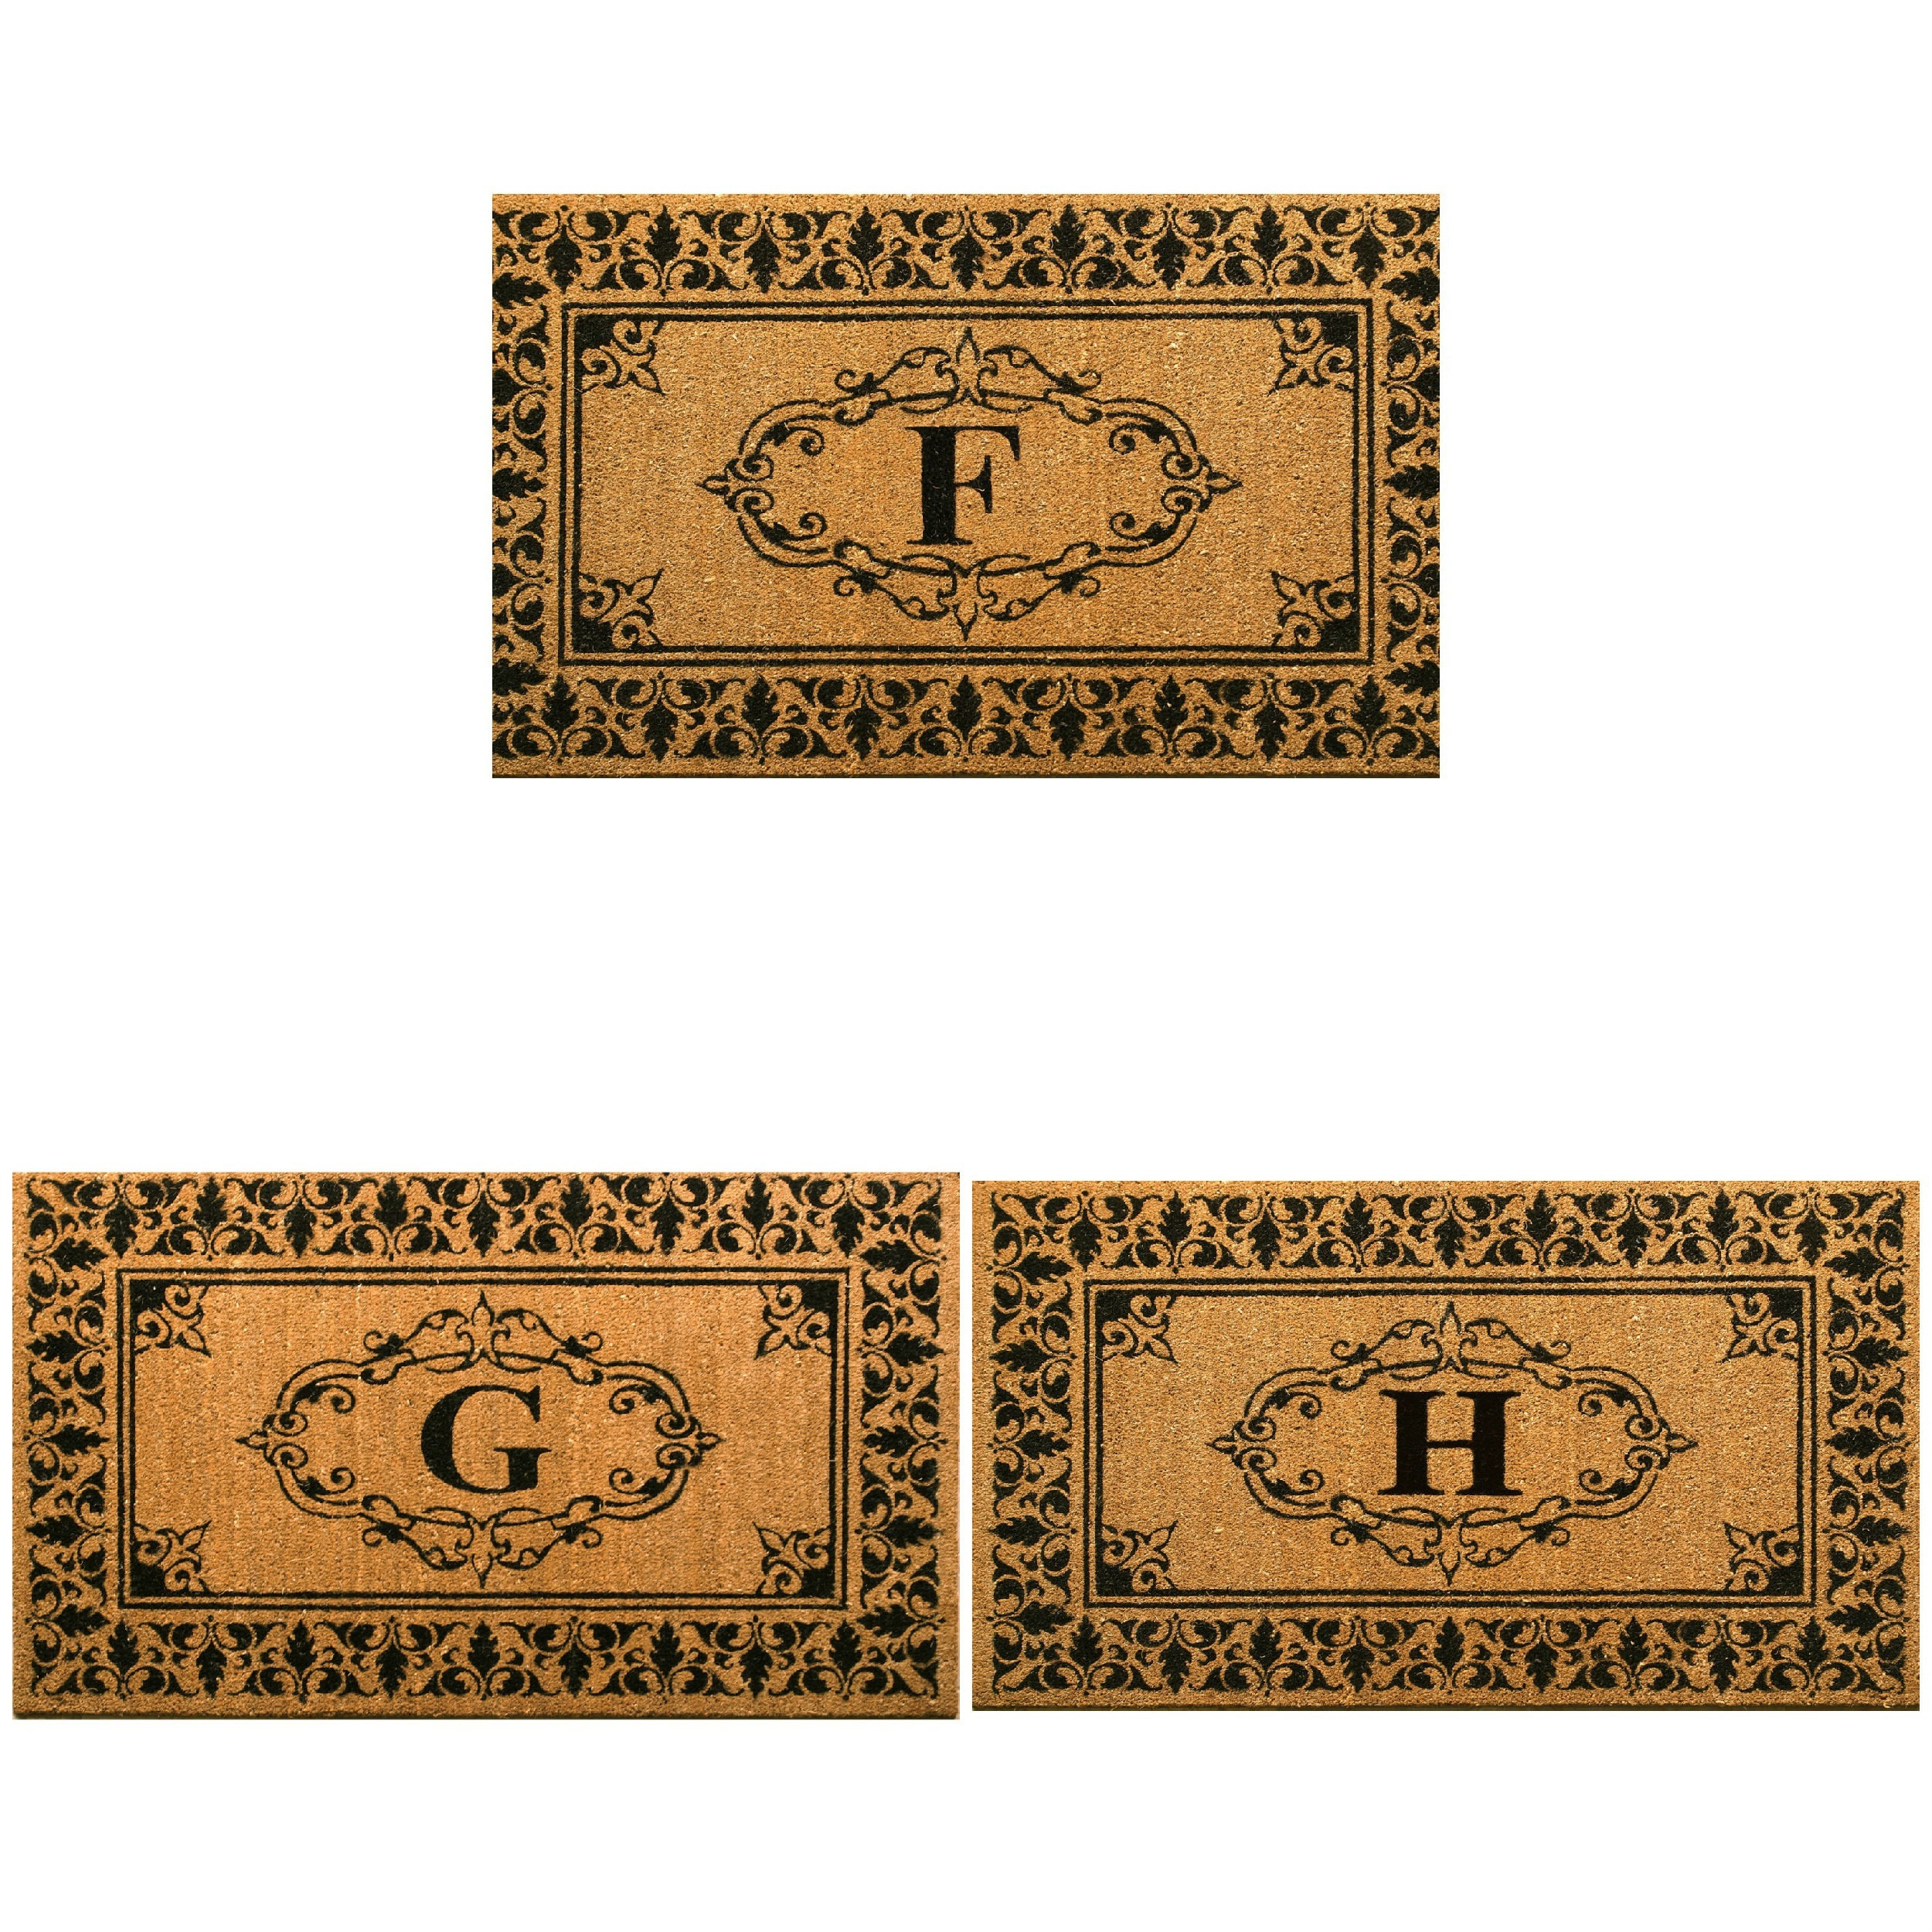 mat inside stunning dogs mats doormat best flooring with christmas entrance dining monogrammed glutton home cheap funny entry large entryway come water door rugs indoor homes ideas front floor x holiday warrant your back size doormats room depot for area bedroom decoration dog